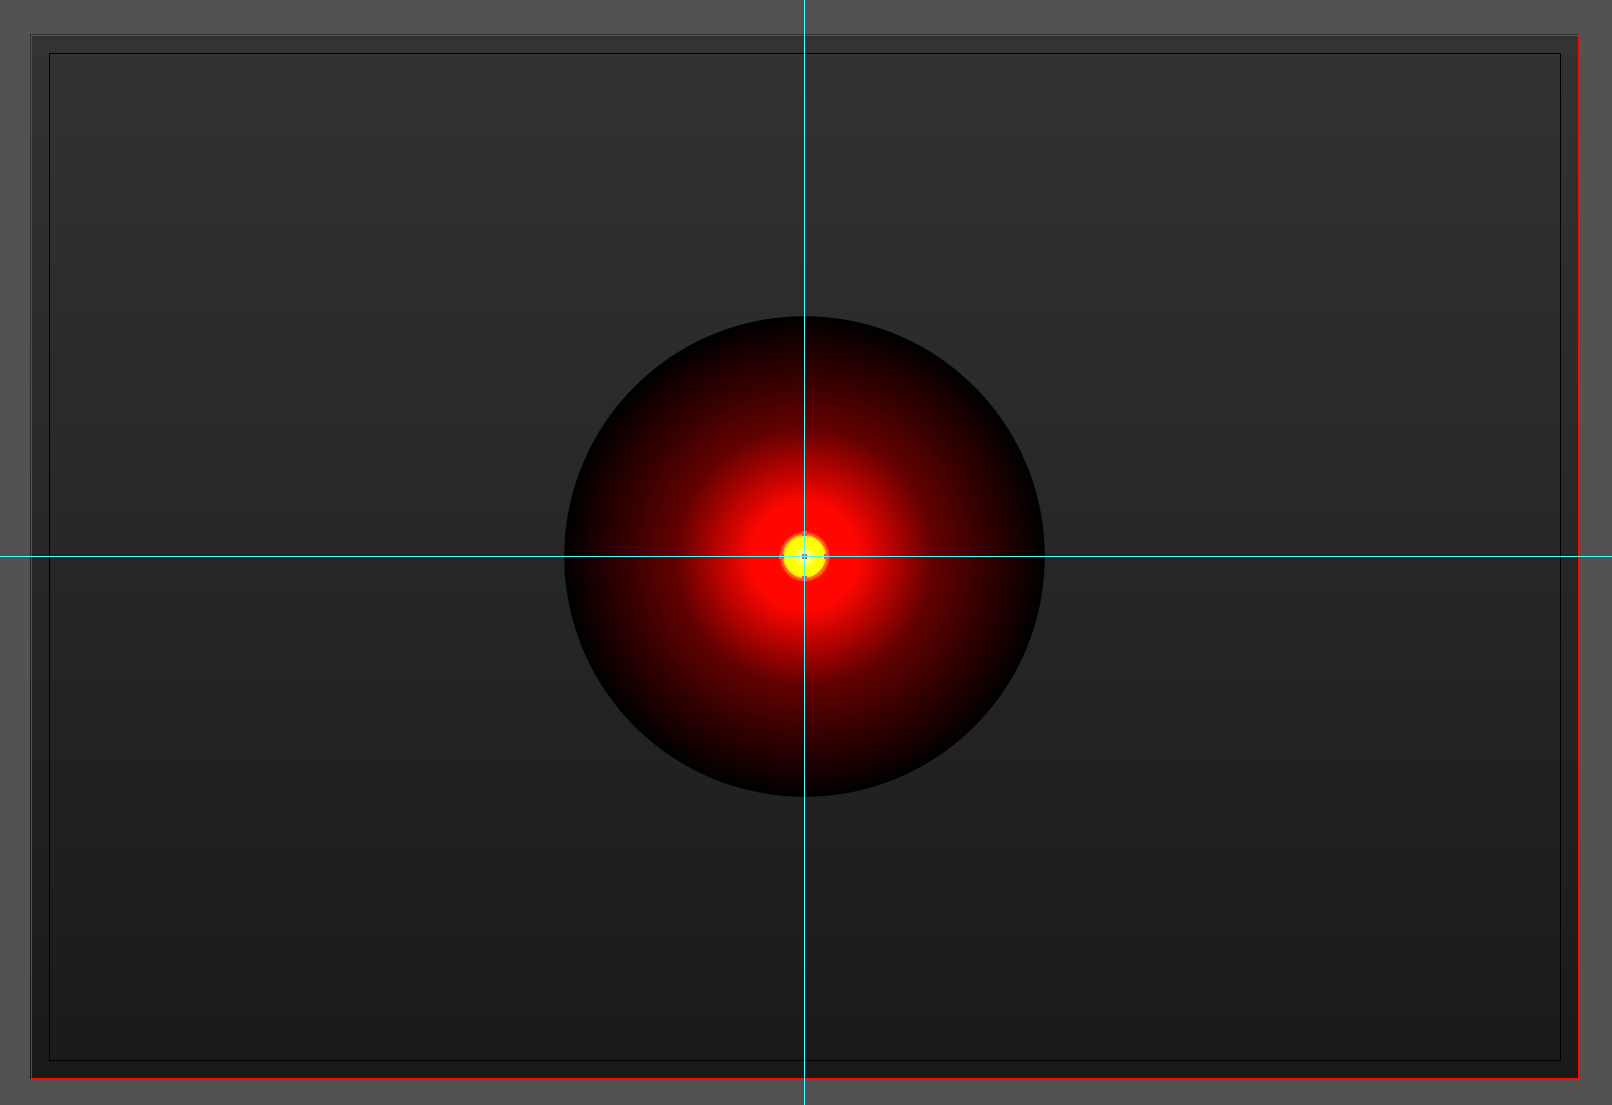 The pupil of HAL 9000 in Adobe Illustrator